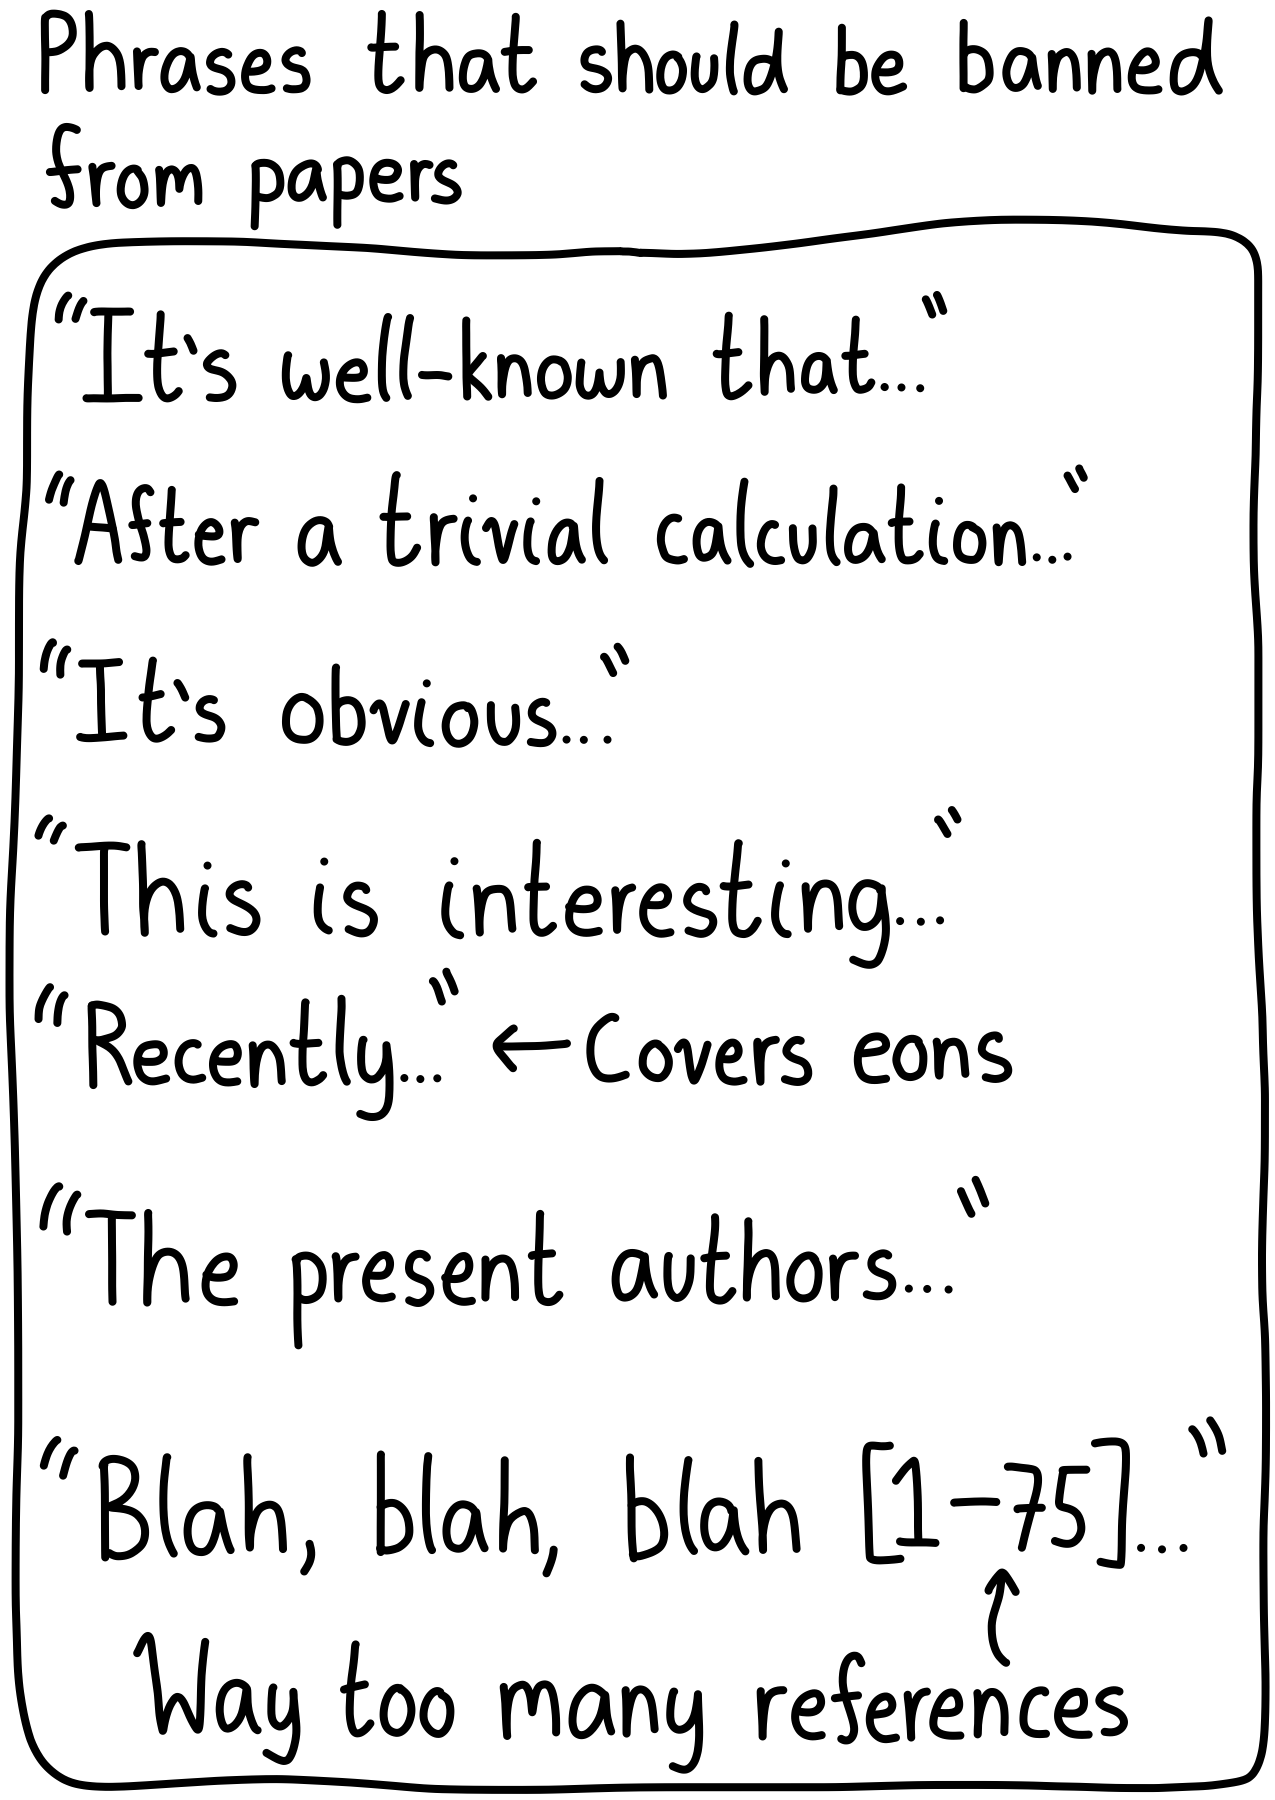 """Phrases that should be banned from papers: """"It's well-known that..."""", """"After a trivial calculation..."""", """"It's obvious..."""", """"This is interesting..."""", """"Recently, ..."""", """"The present authors ..."""", """"Blah, blah, blah (1-75) ..."""" (Way too many indices)."""